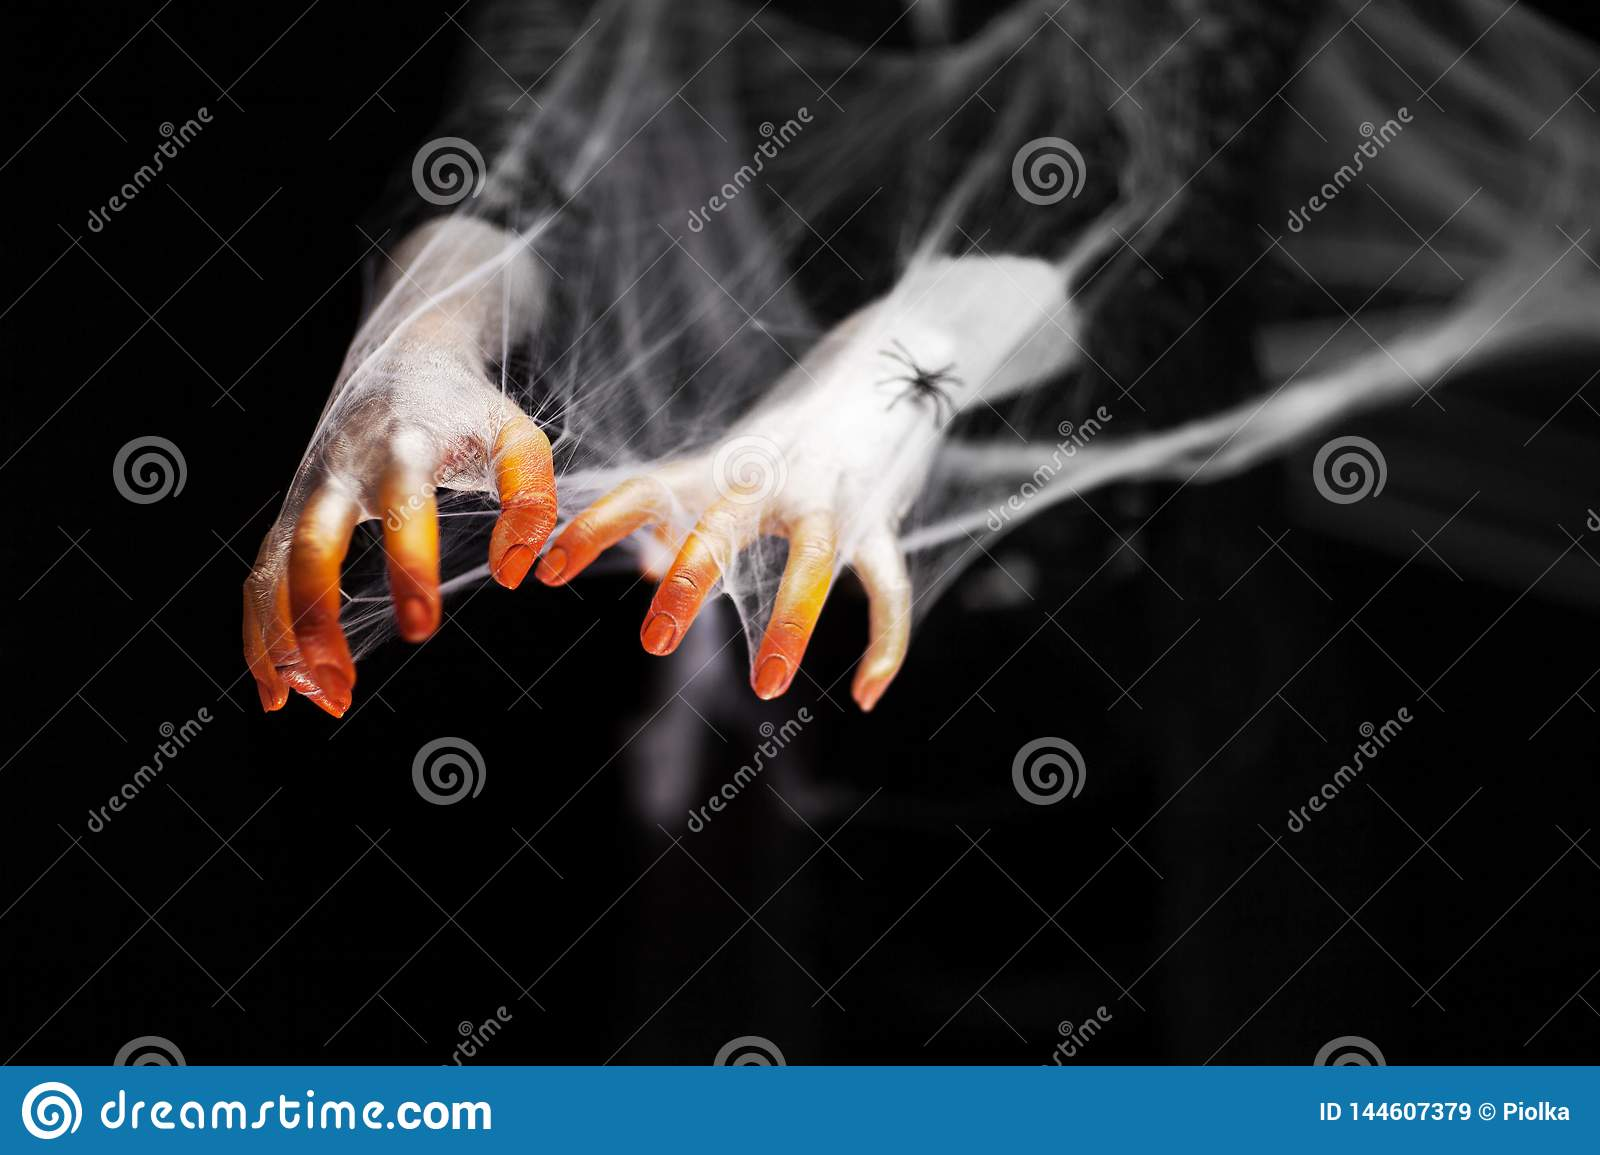 Creepy halloween hand in orange and white with spider web, zombie hand